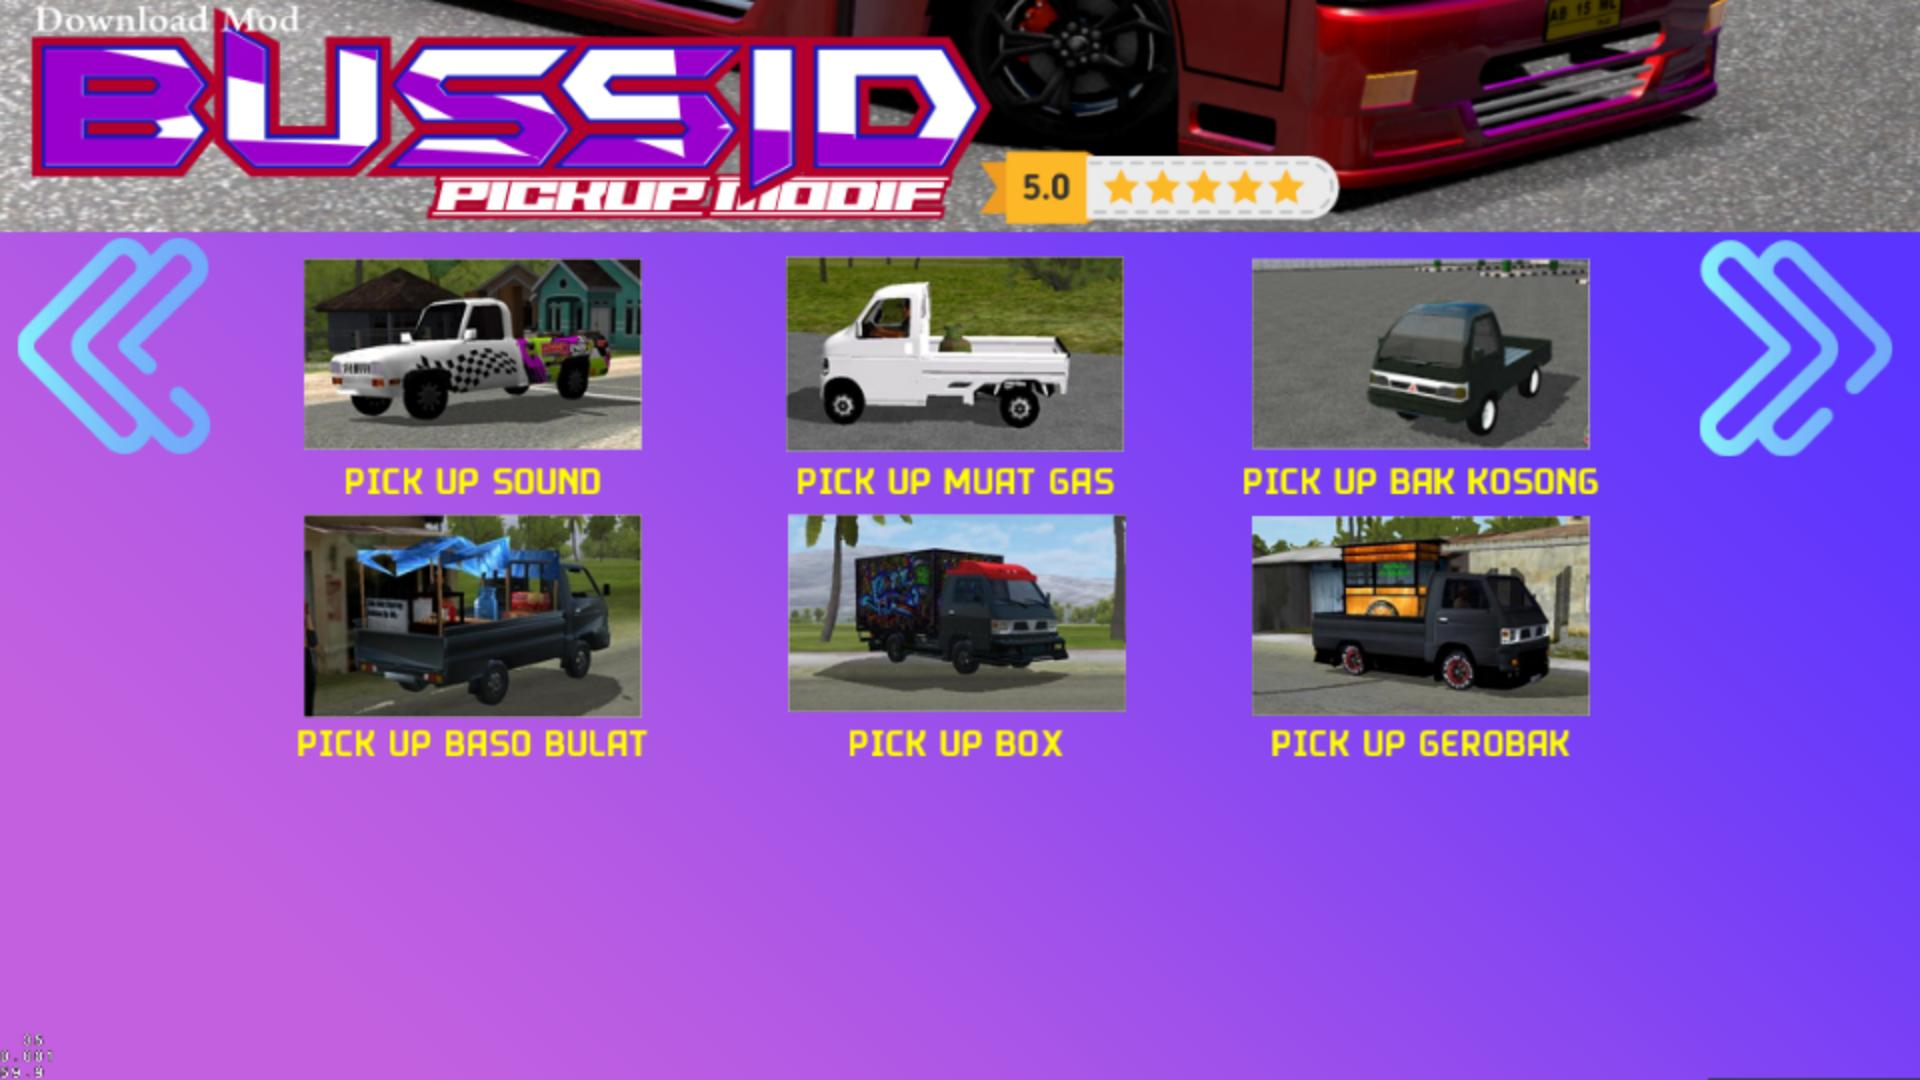 Mod Bussid Pick Up Terpal For Android Apk Download